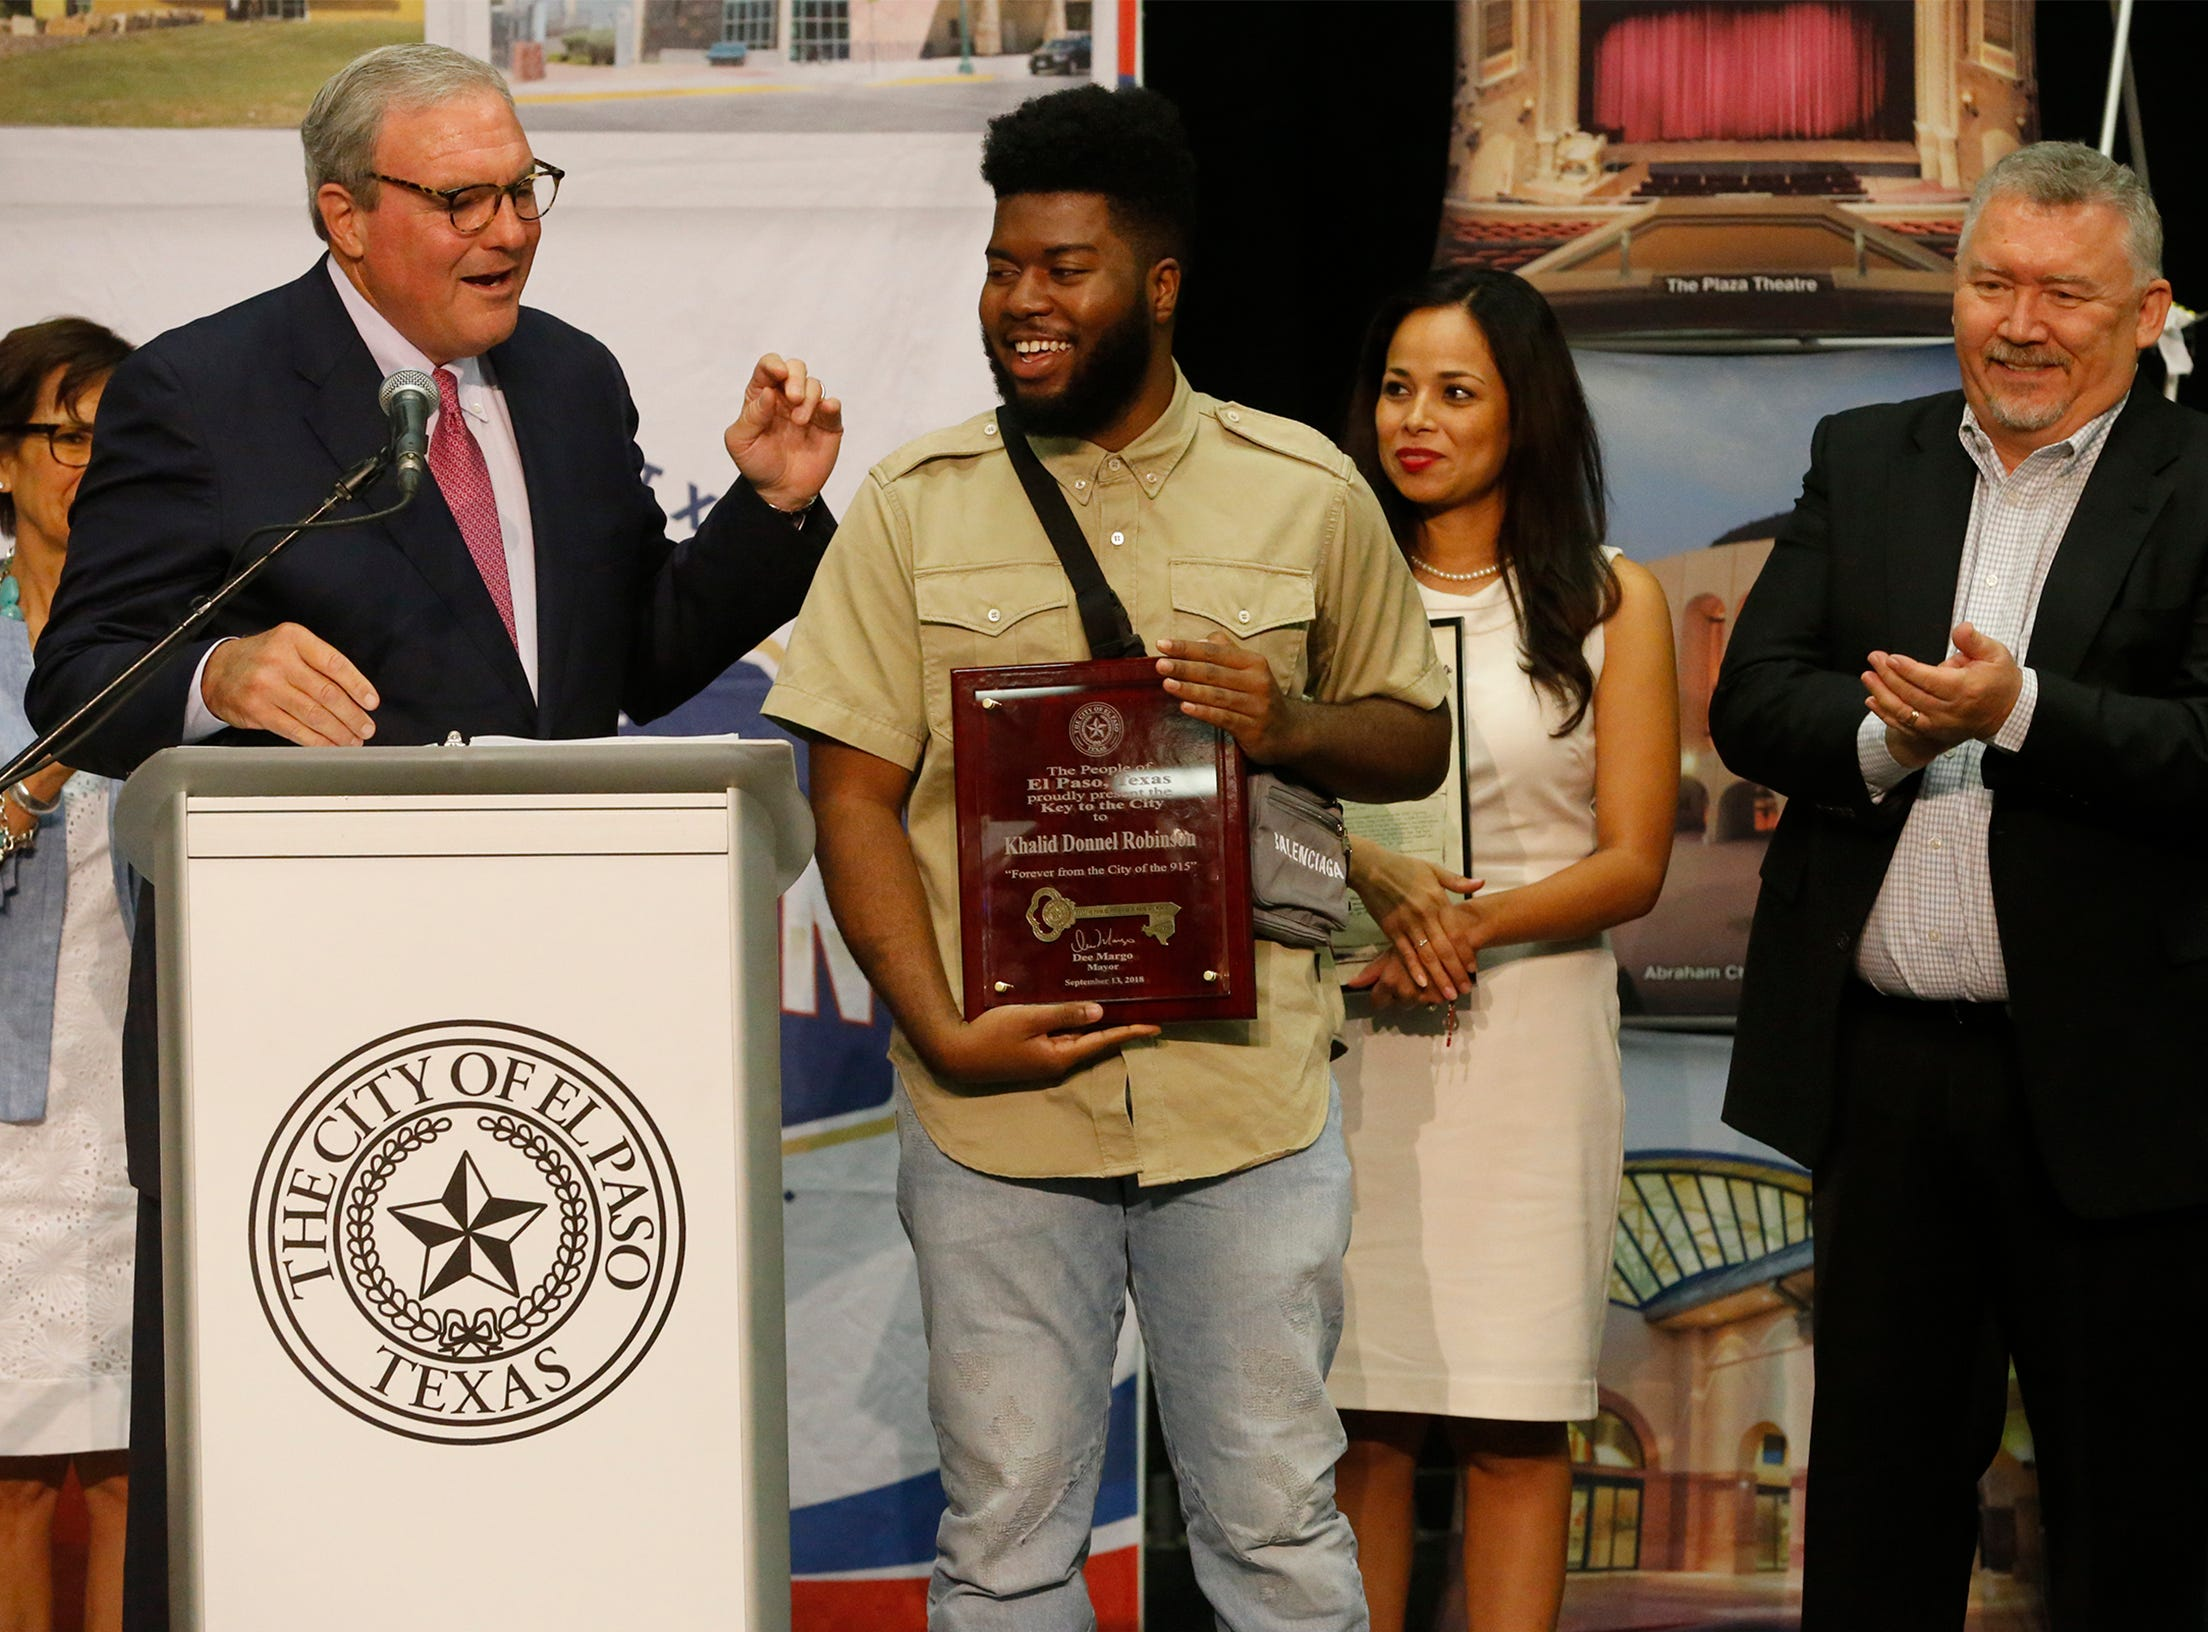 El Paso Mayor Dee Margo presents the Key to the City to El Pasoan Khalid shortly after delivering his State of the City address, which was held Thursday afternoon in the El Paso convention center. The mayor was joined by members of the City Council as he presented the award-winning music star with the honor.